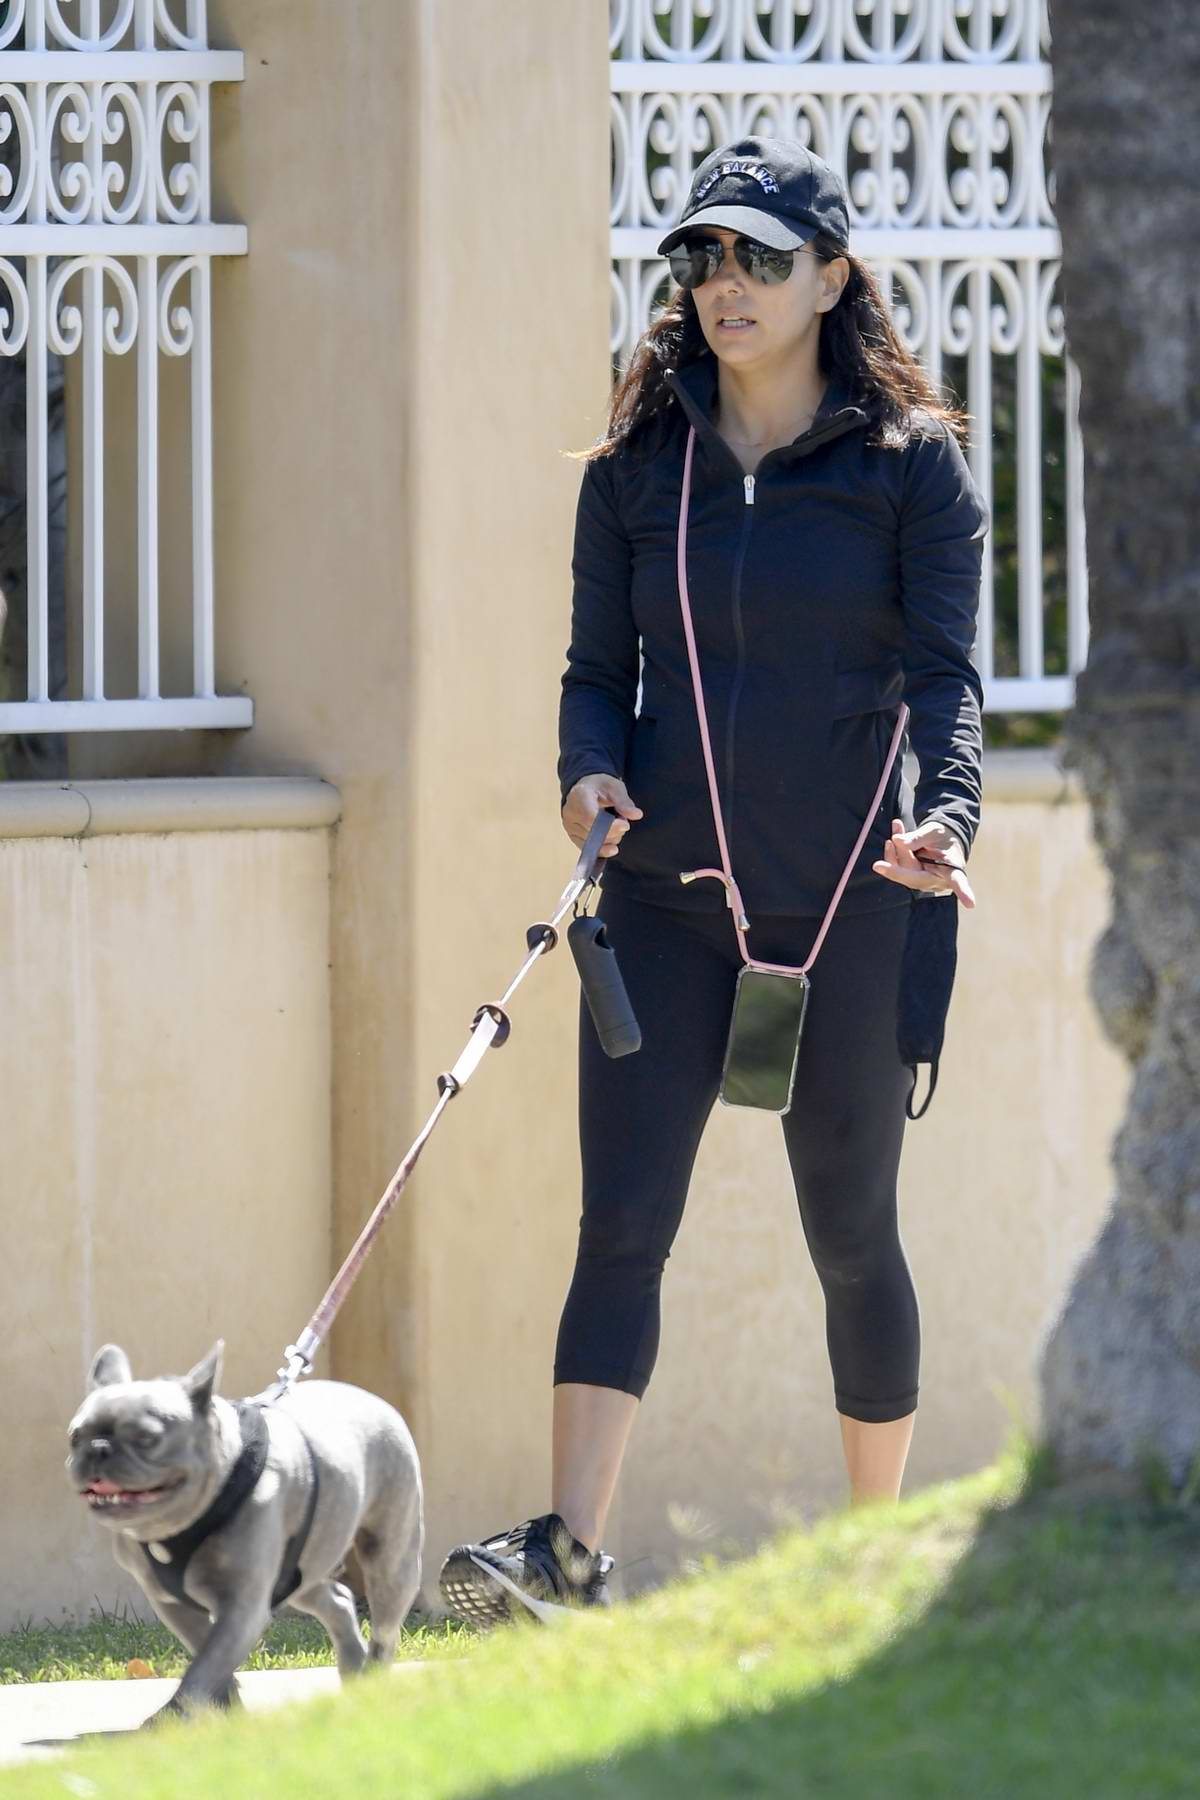 Eva Longoria spends the day at the park with her family in Beverly Hills, California